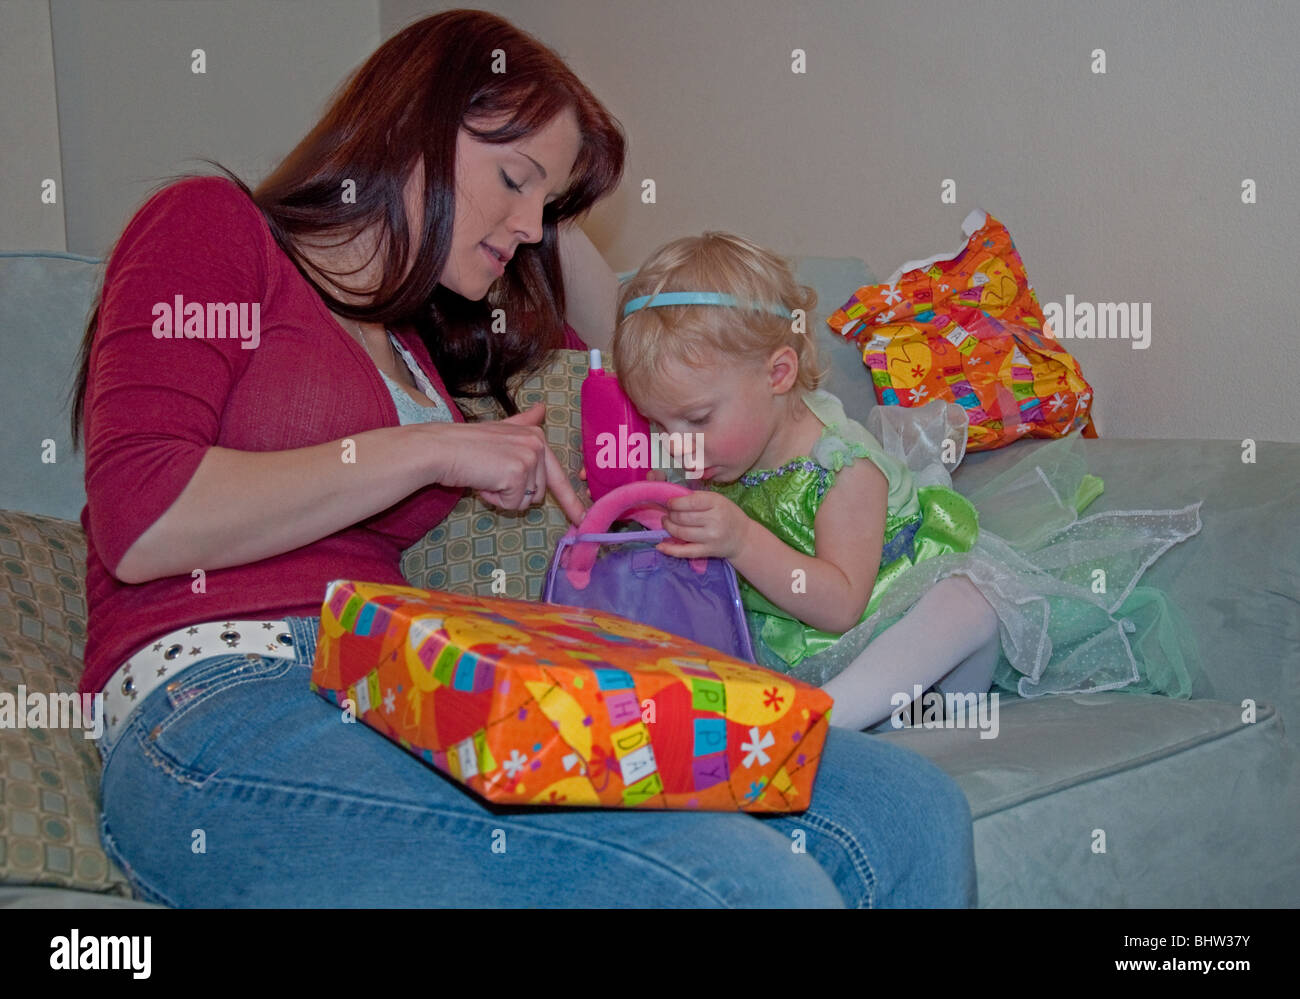 This Young Mother Is Helping Her Cute 2 Year Old Caucasian Toddler Daughter With Birthday Presents Background Intentionally